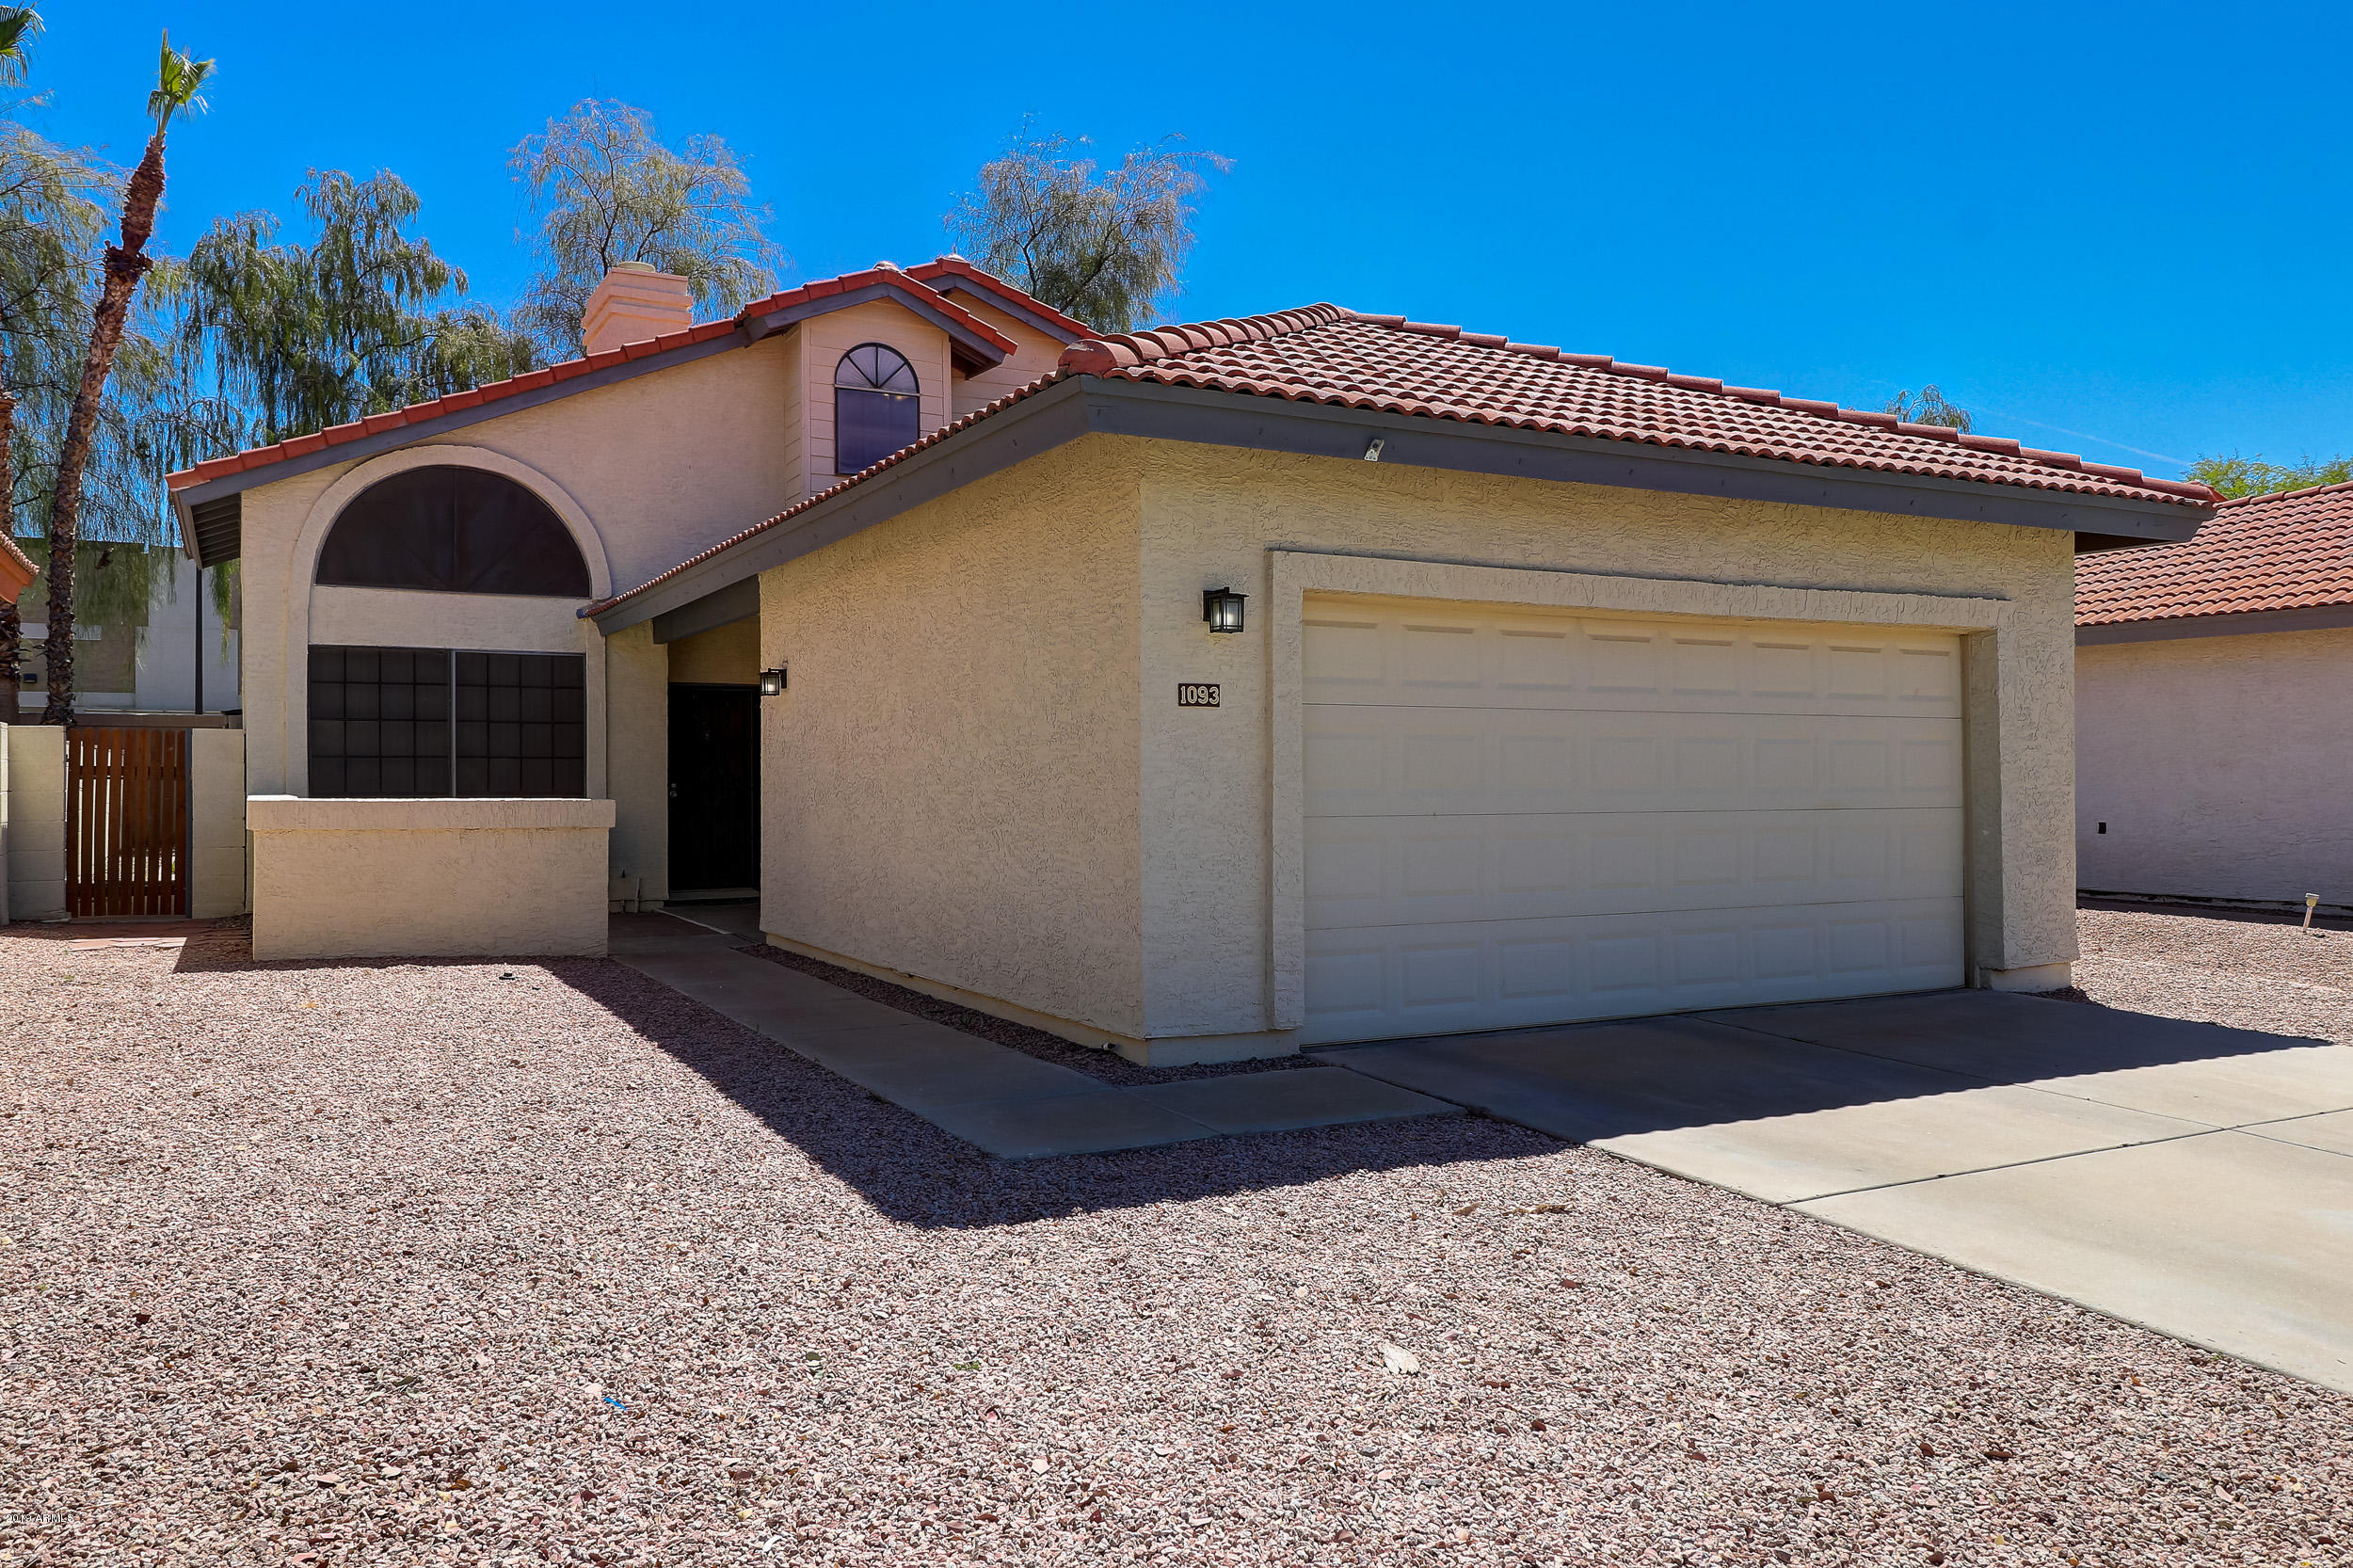 Photo of 1093 N WILLOW Street, Chandler, AZ 85226